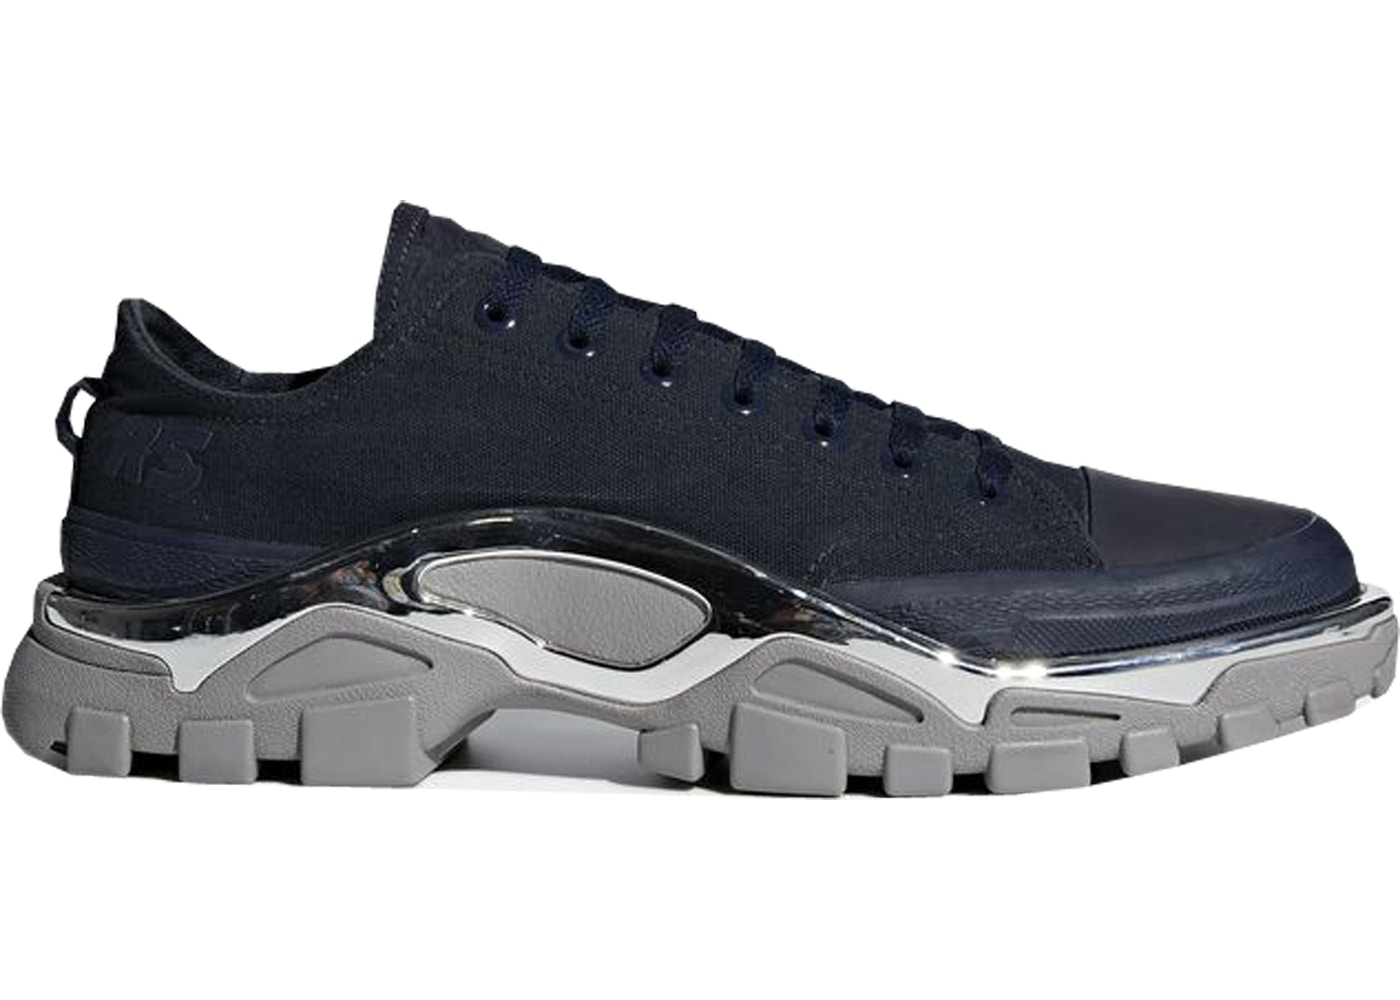 the best attitude 871c9 5f815 Sell. or Ask. Size 11.5. View All Bids. adidas Detroit Runner Raf Simons  Night Navy